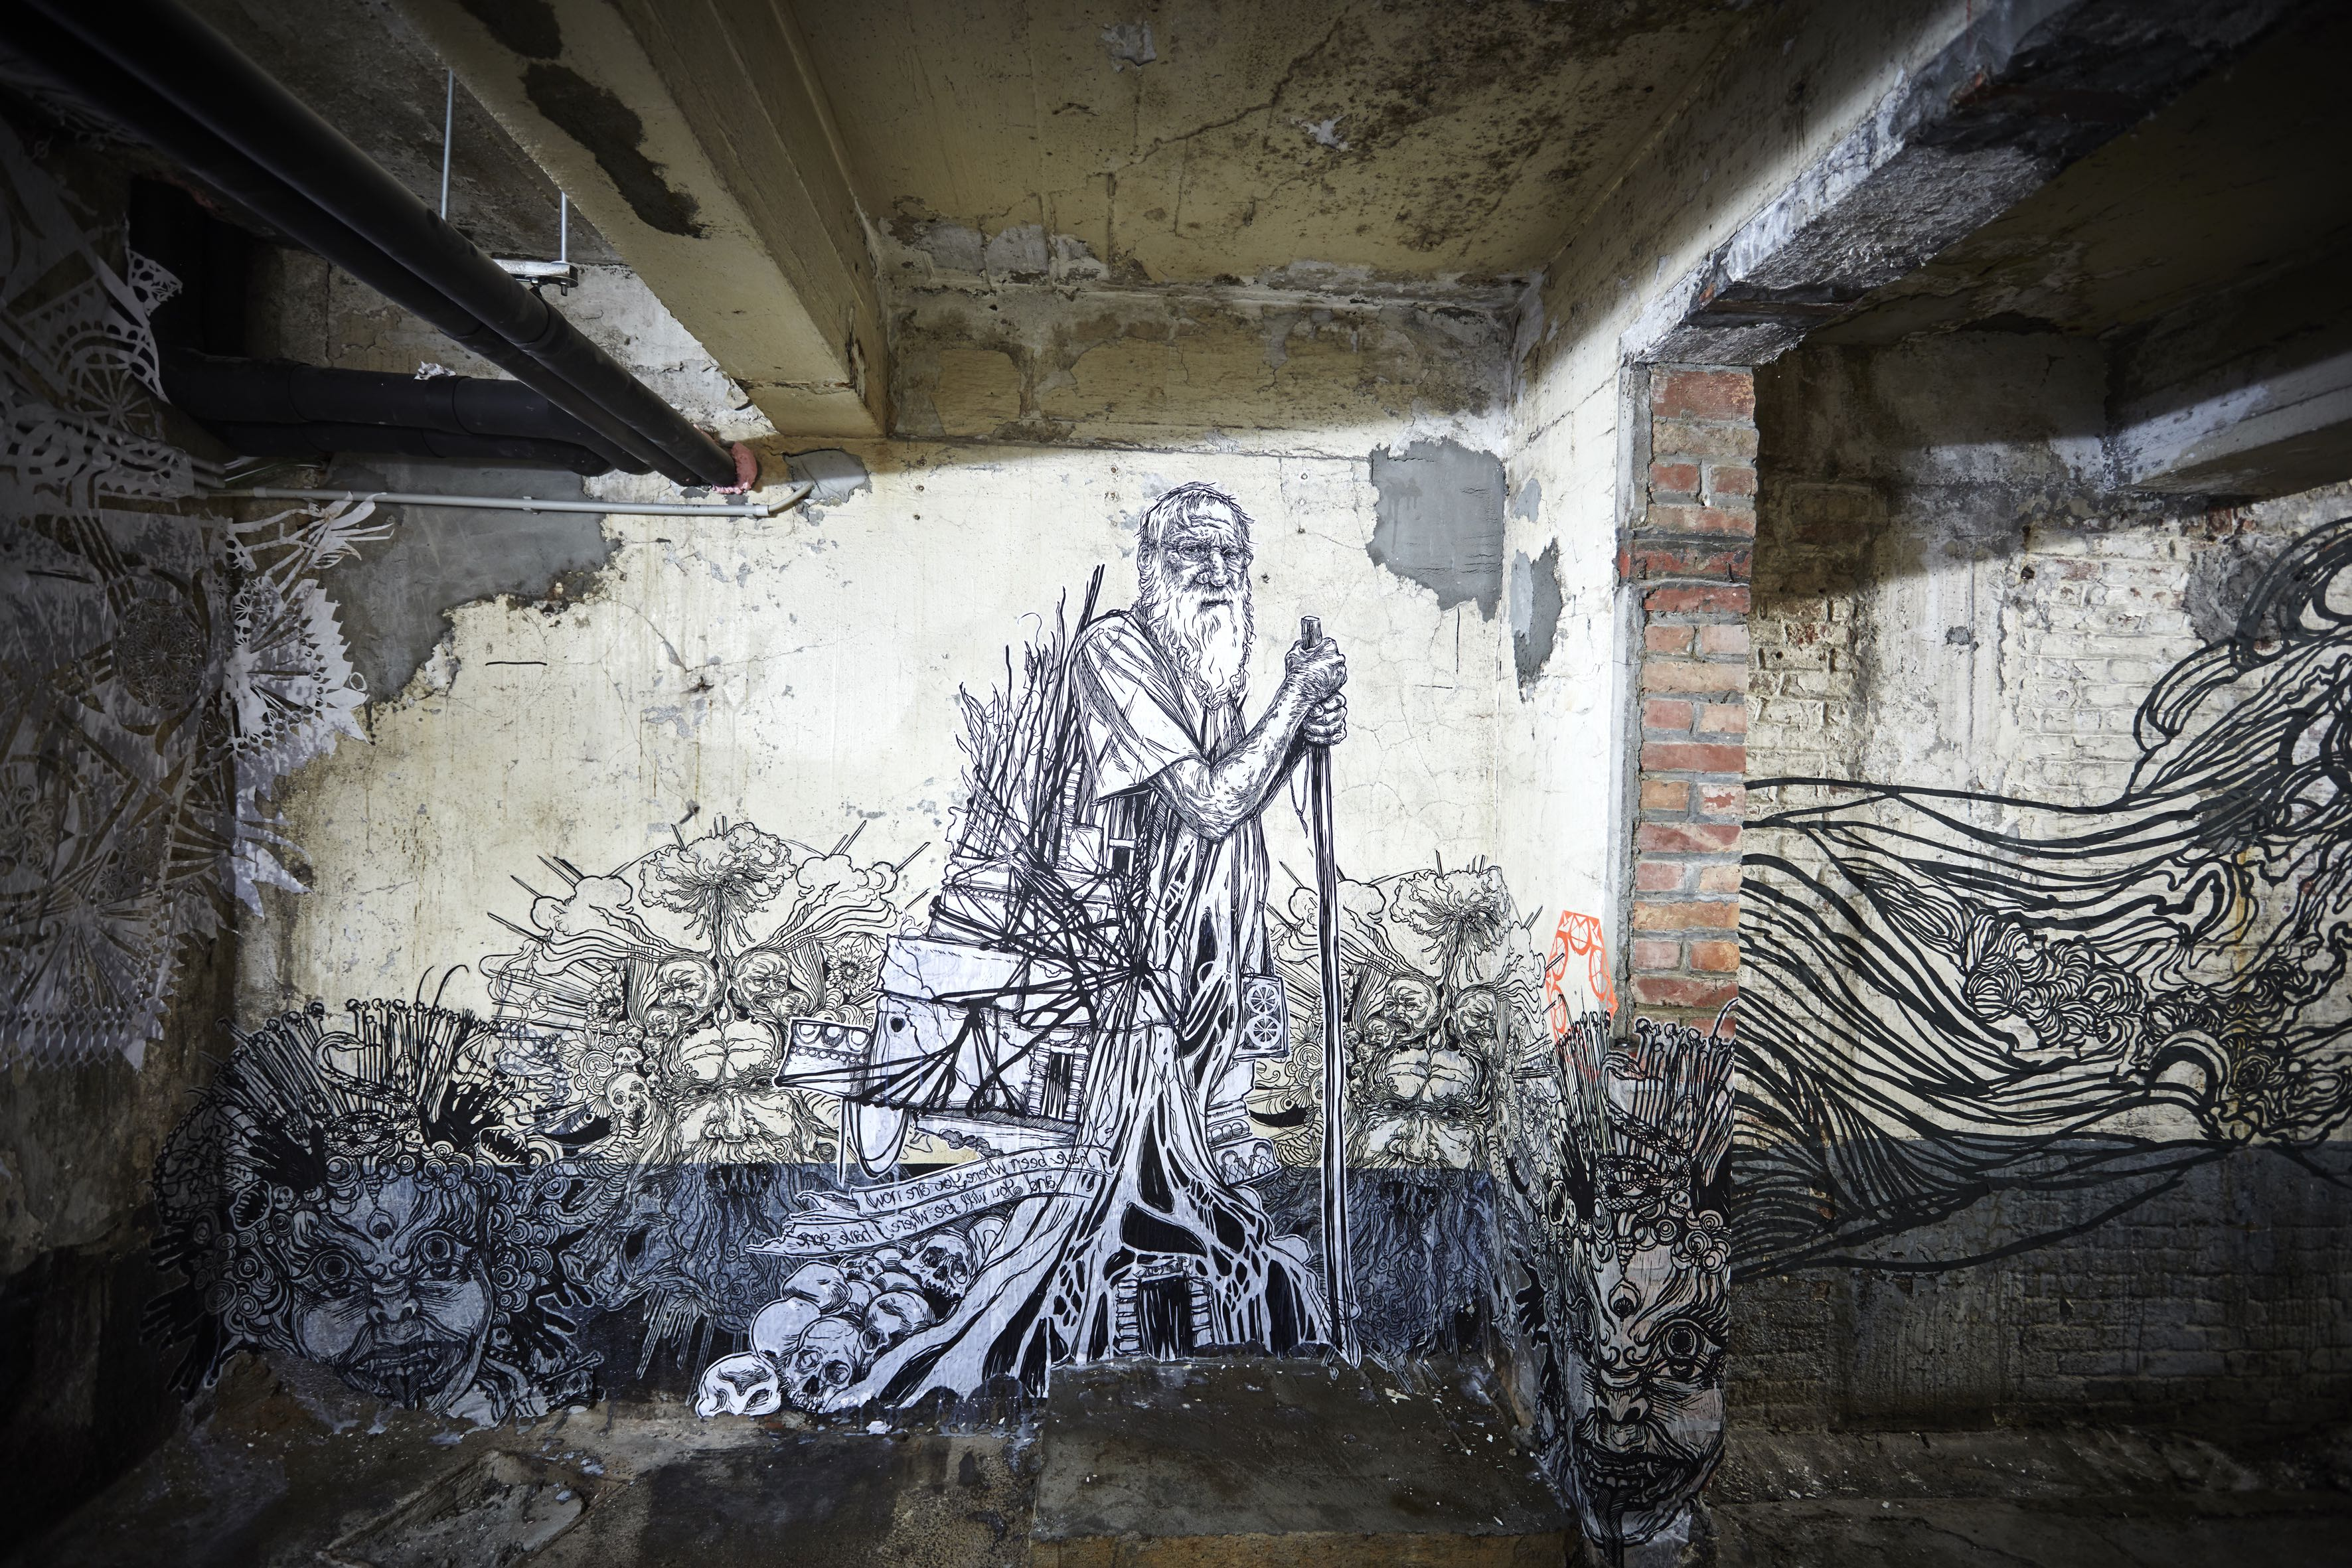 The work of US artist Swoon in MIMA's basement | © The Pickles, Courtesy of the MIMA Museum